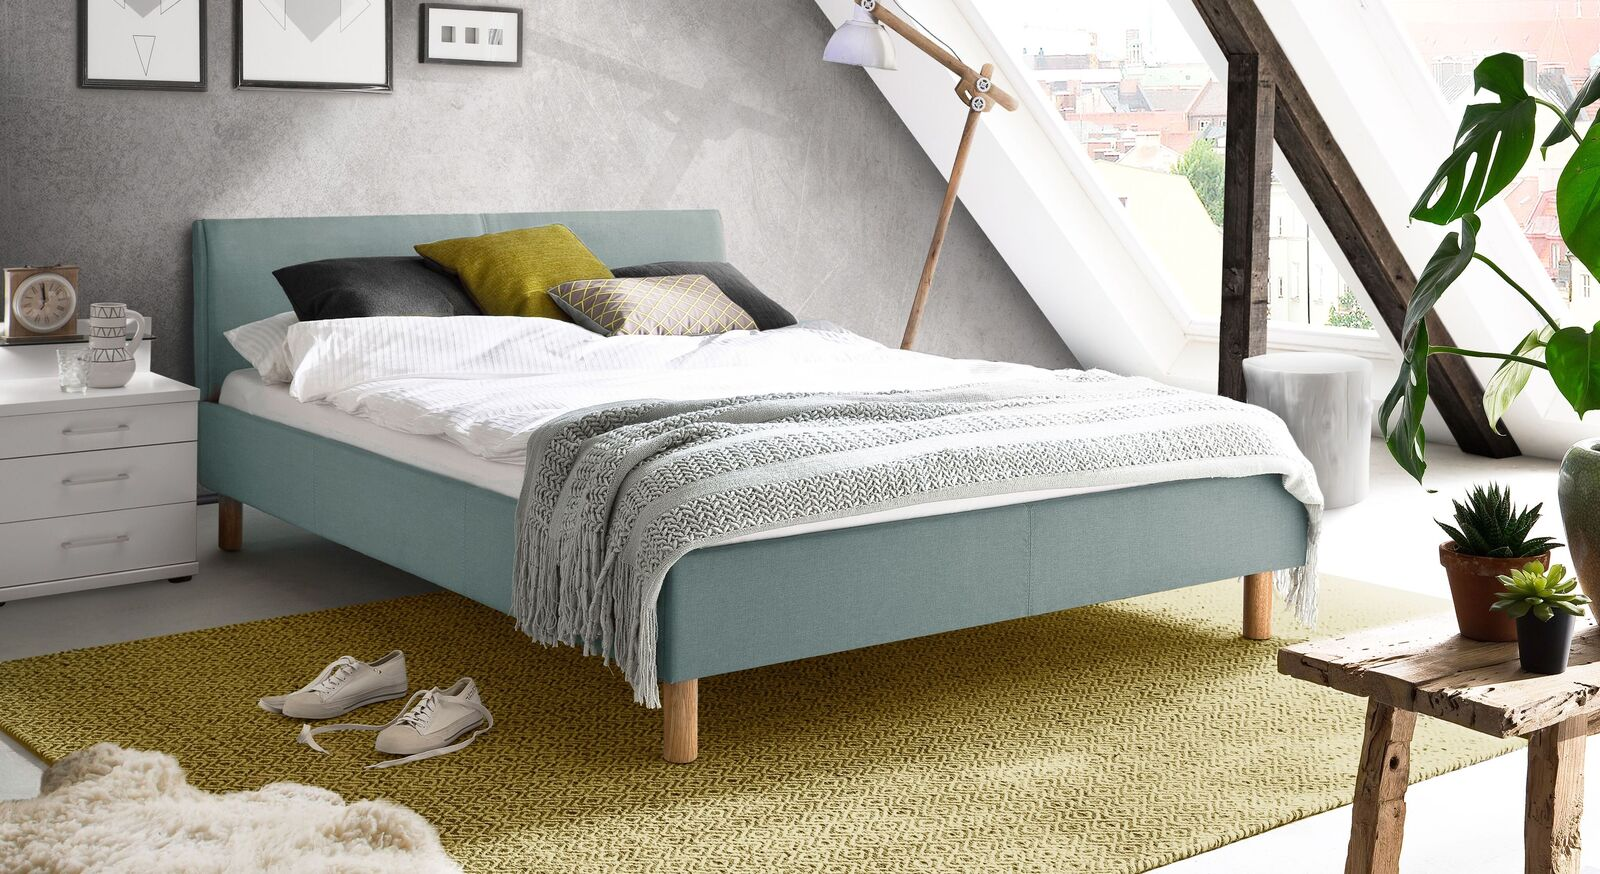 Bett Bela in angesagtem Retro-Look